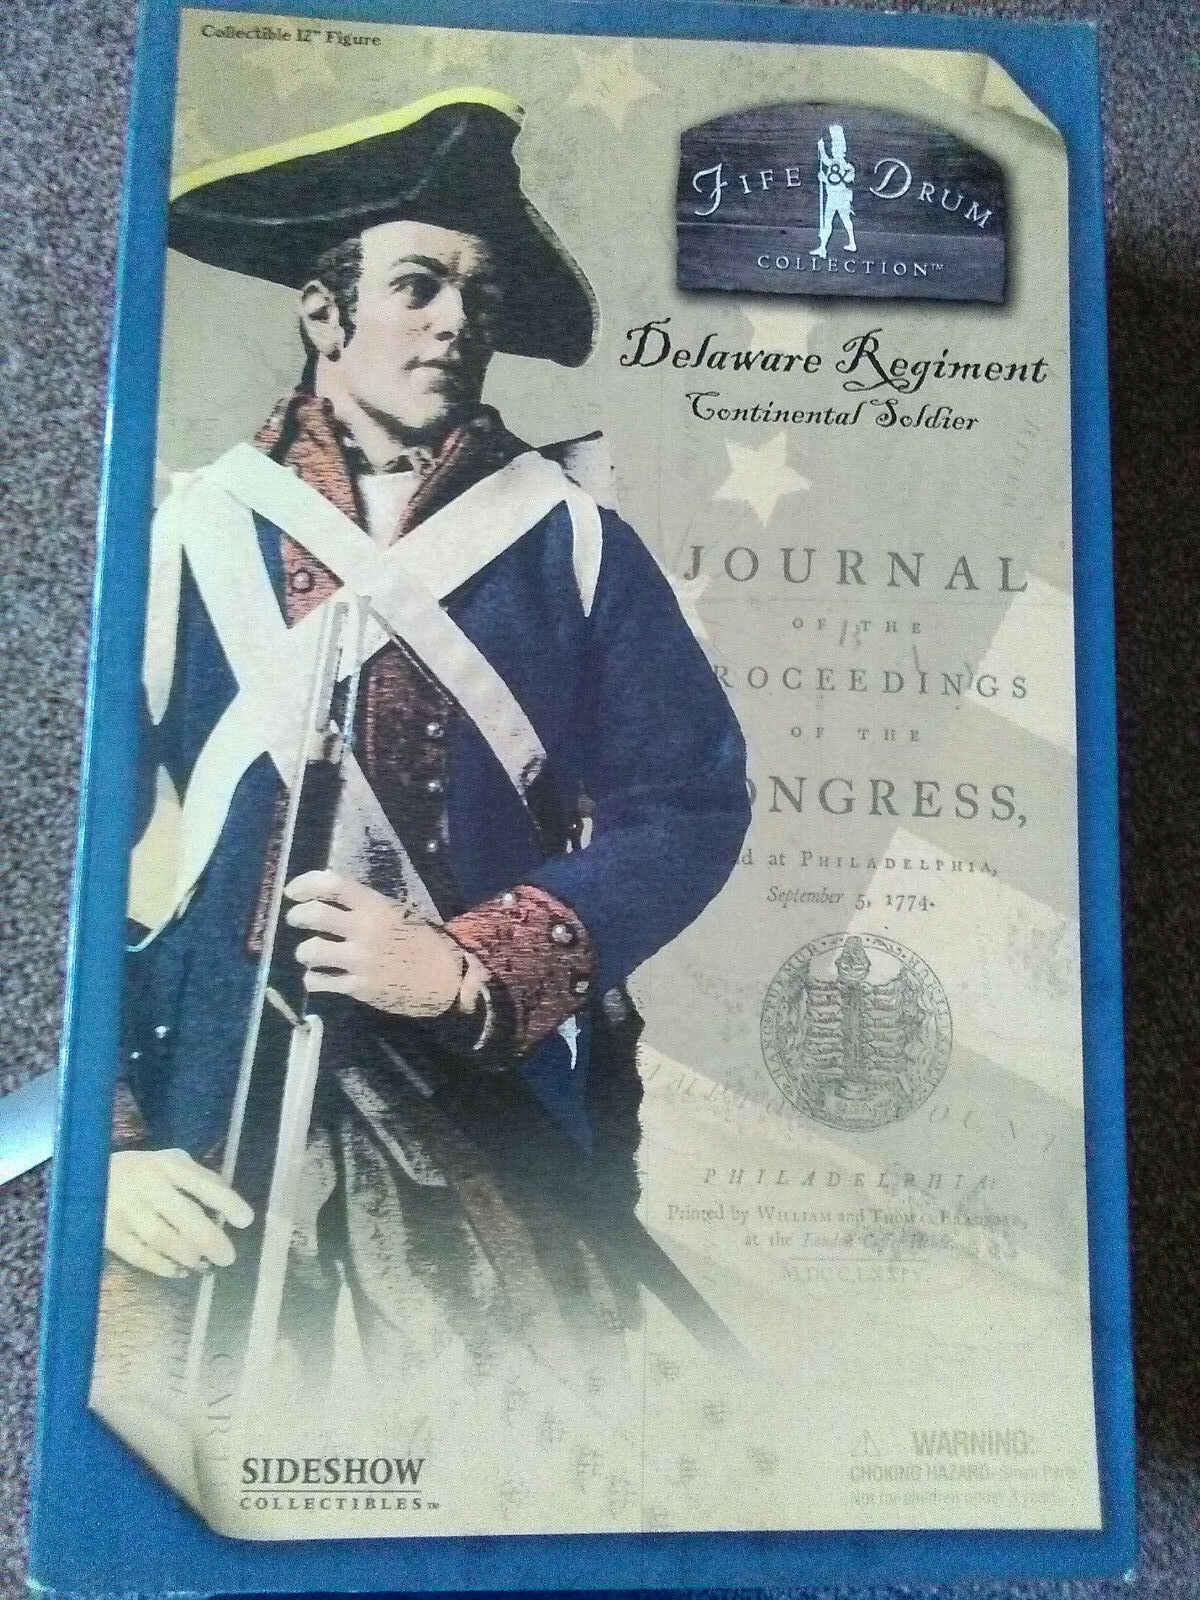 FIFE & DRUM COLLECTION 12 FIGURE DELAWARE REGT CONTINENTAL SOLDIER 1775-1783